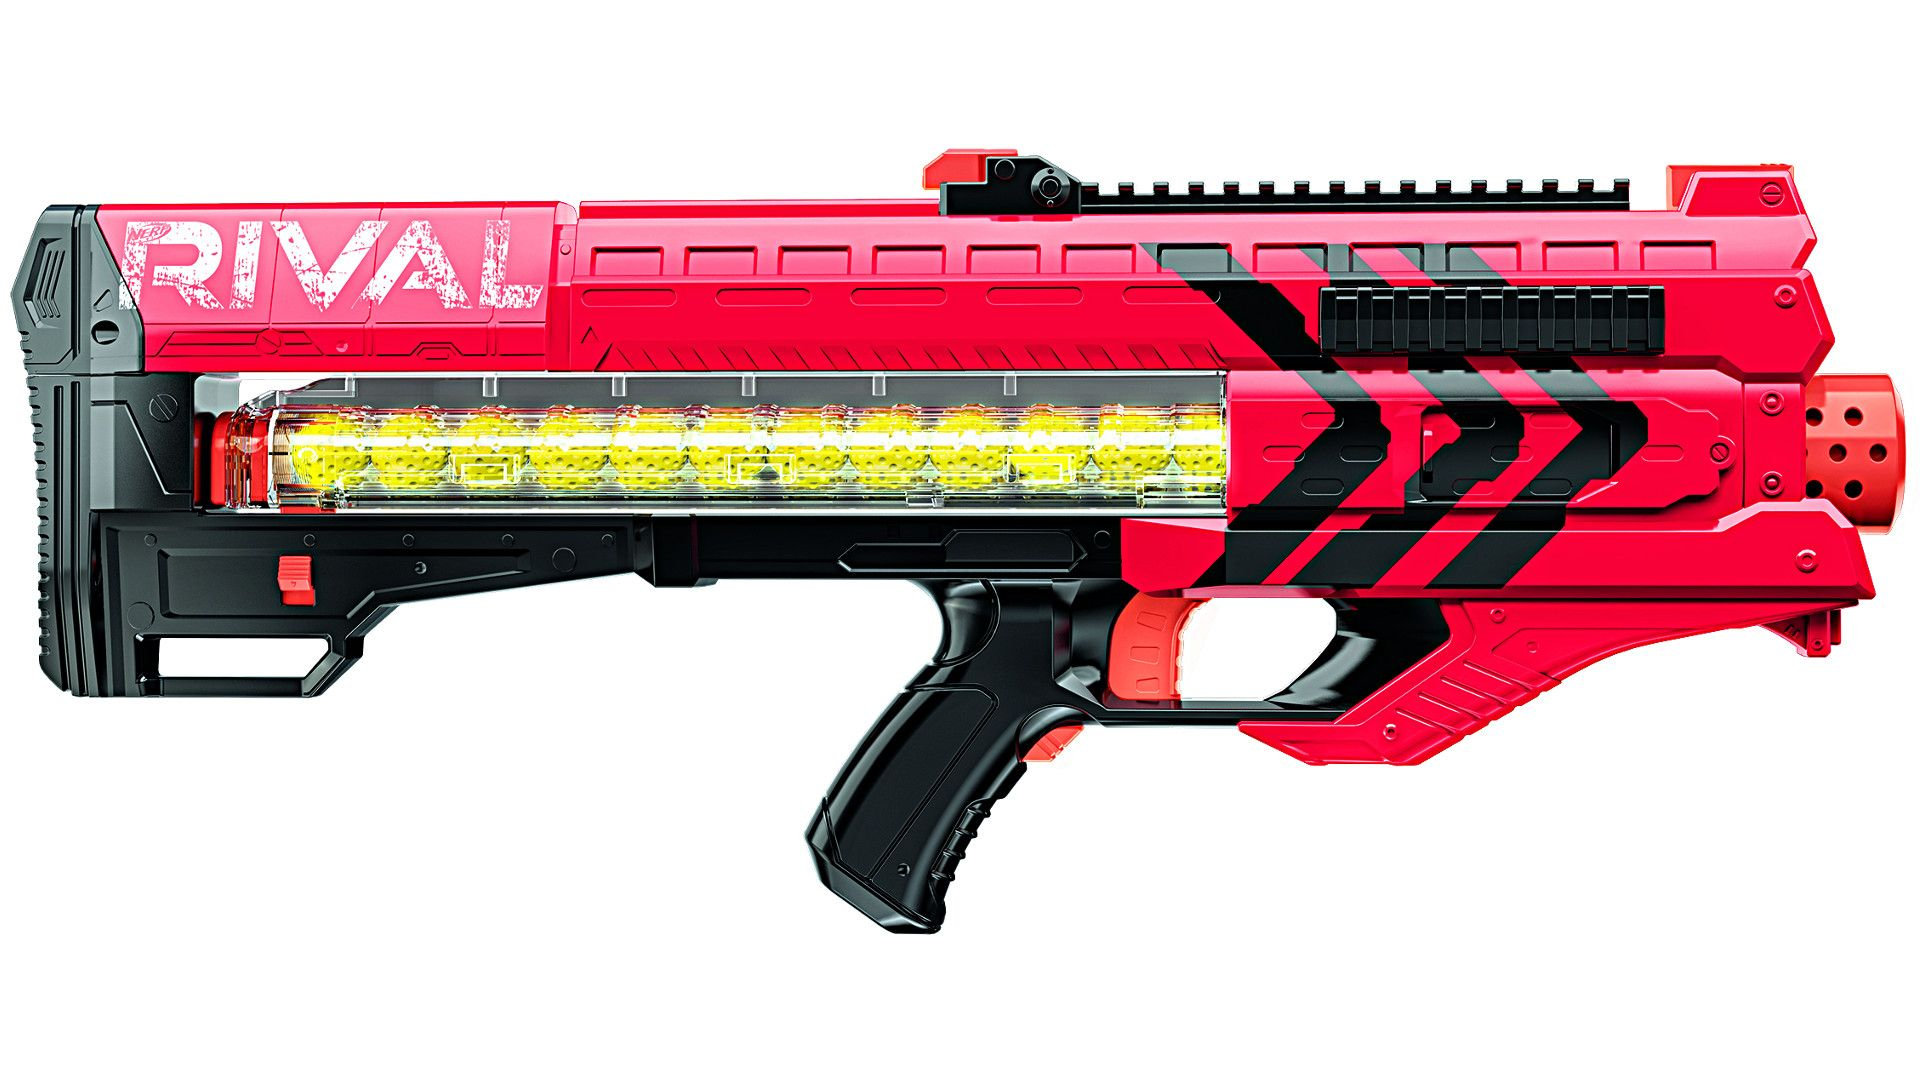 Image result for best nerf gun in the world 2017